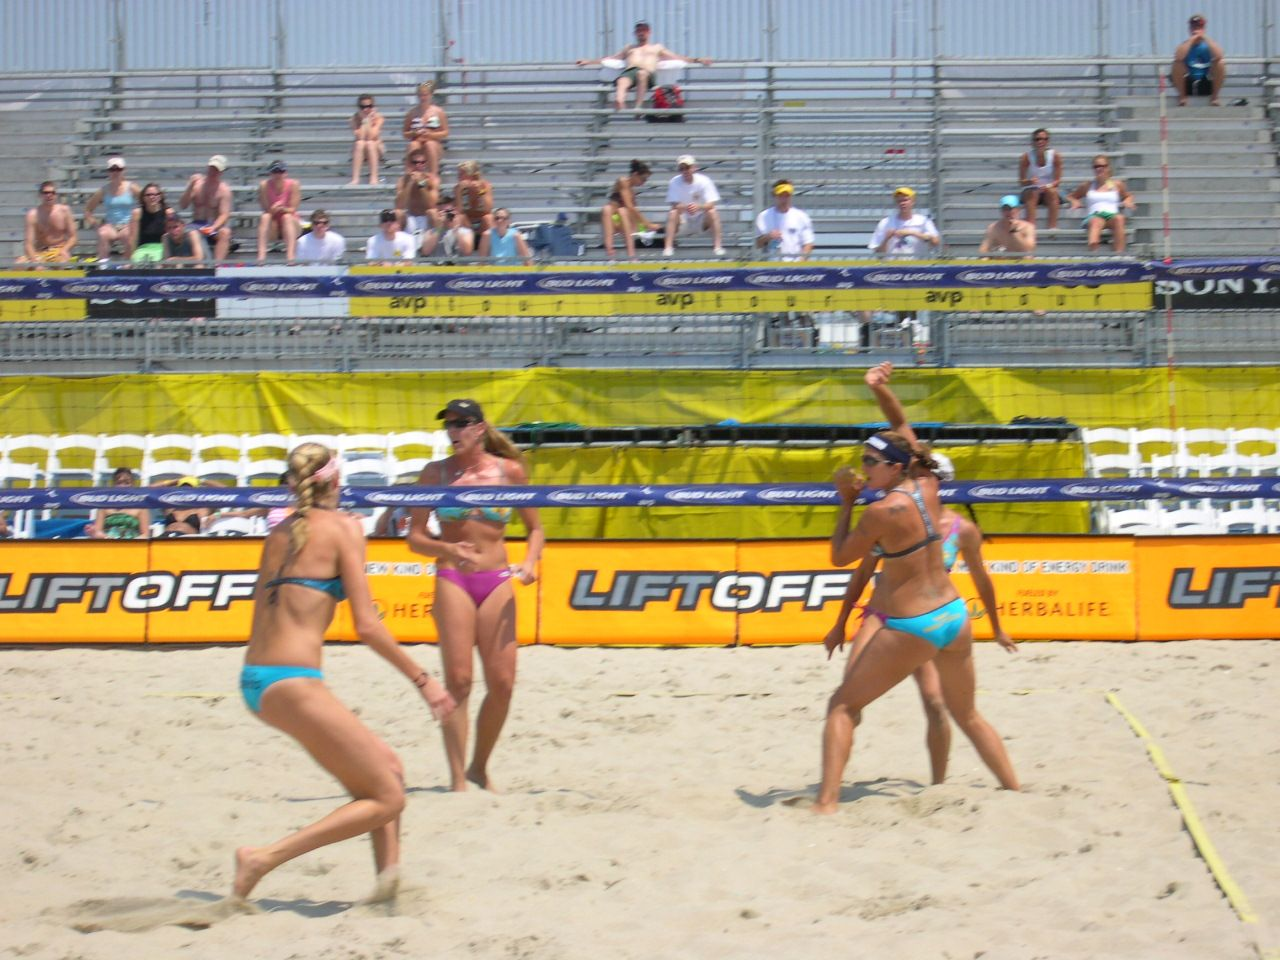 Misty And Kerri At Seaside Nj Avp Tournament Beach Volleyball Sports Sumo Wrestling